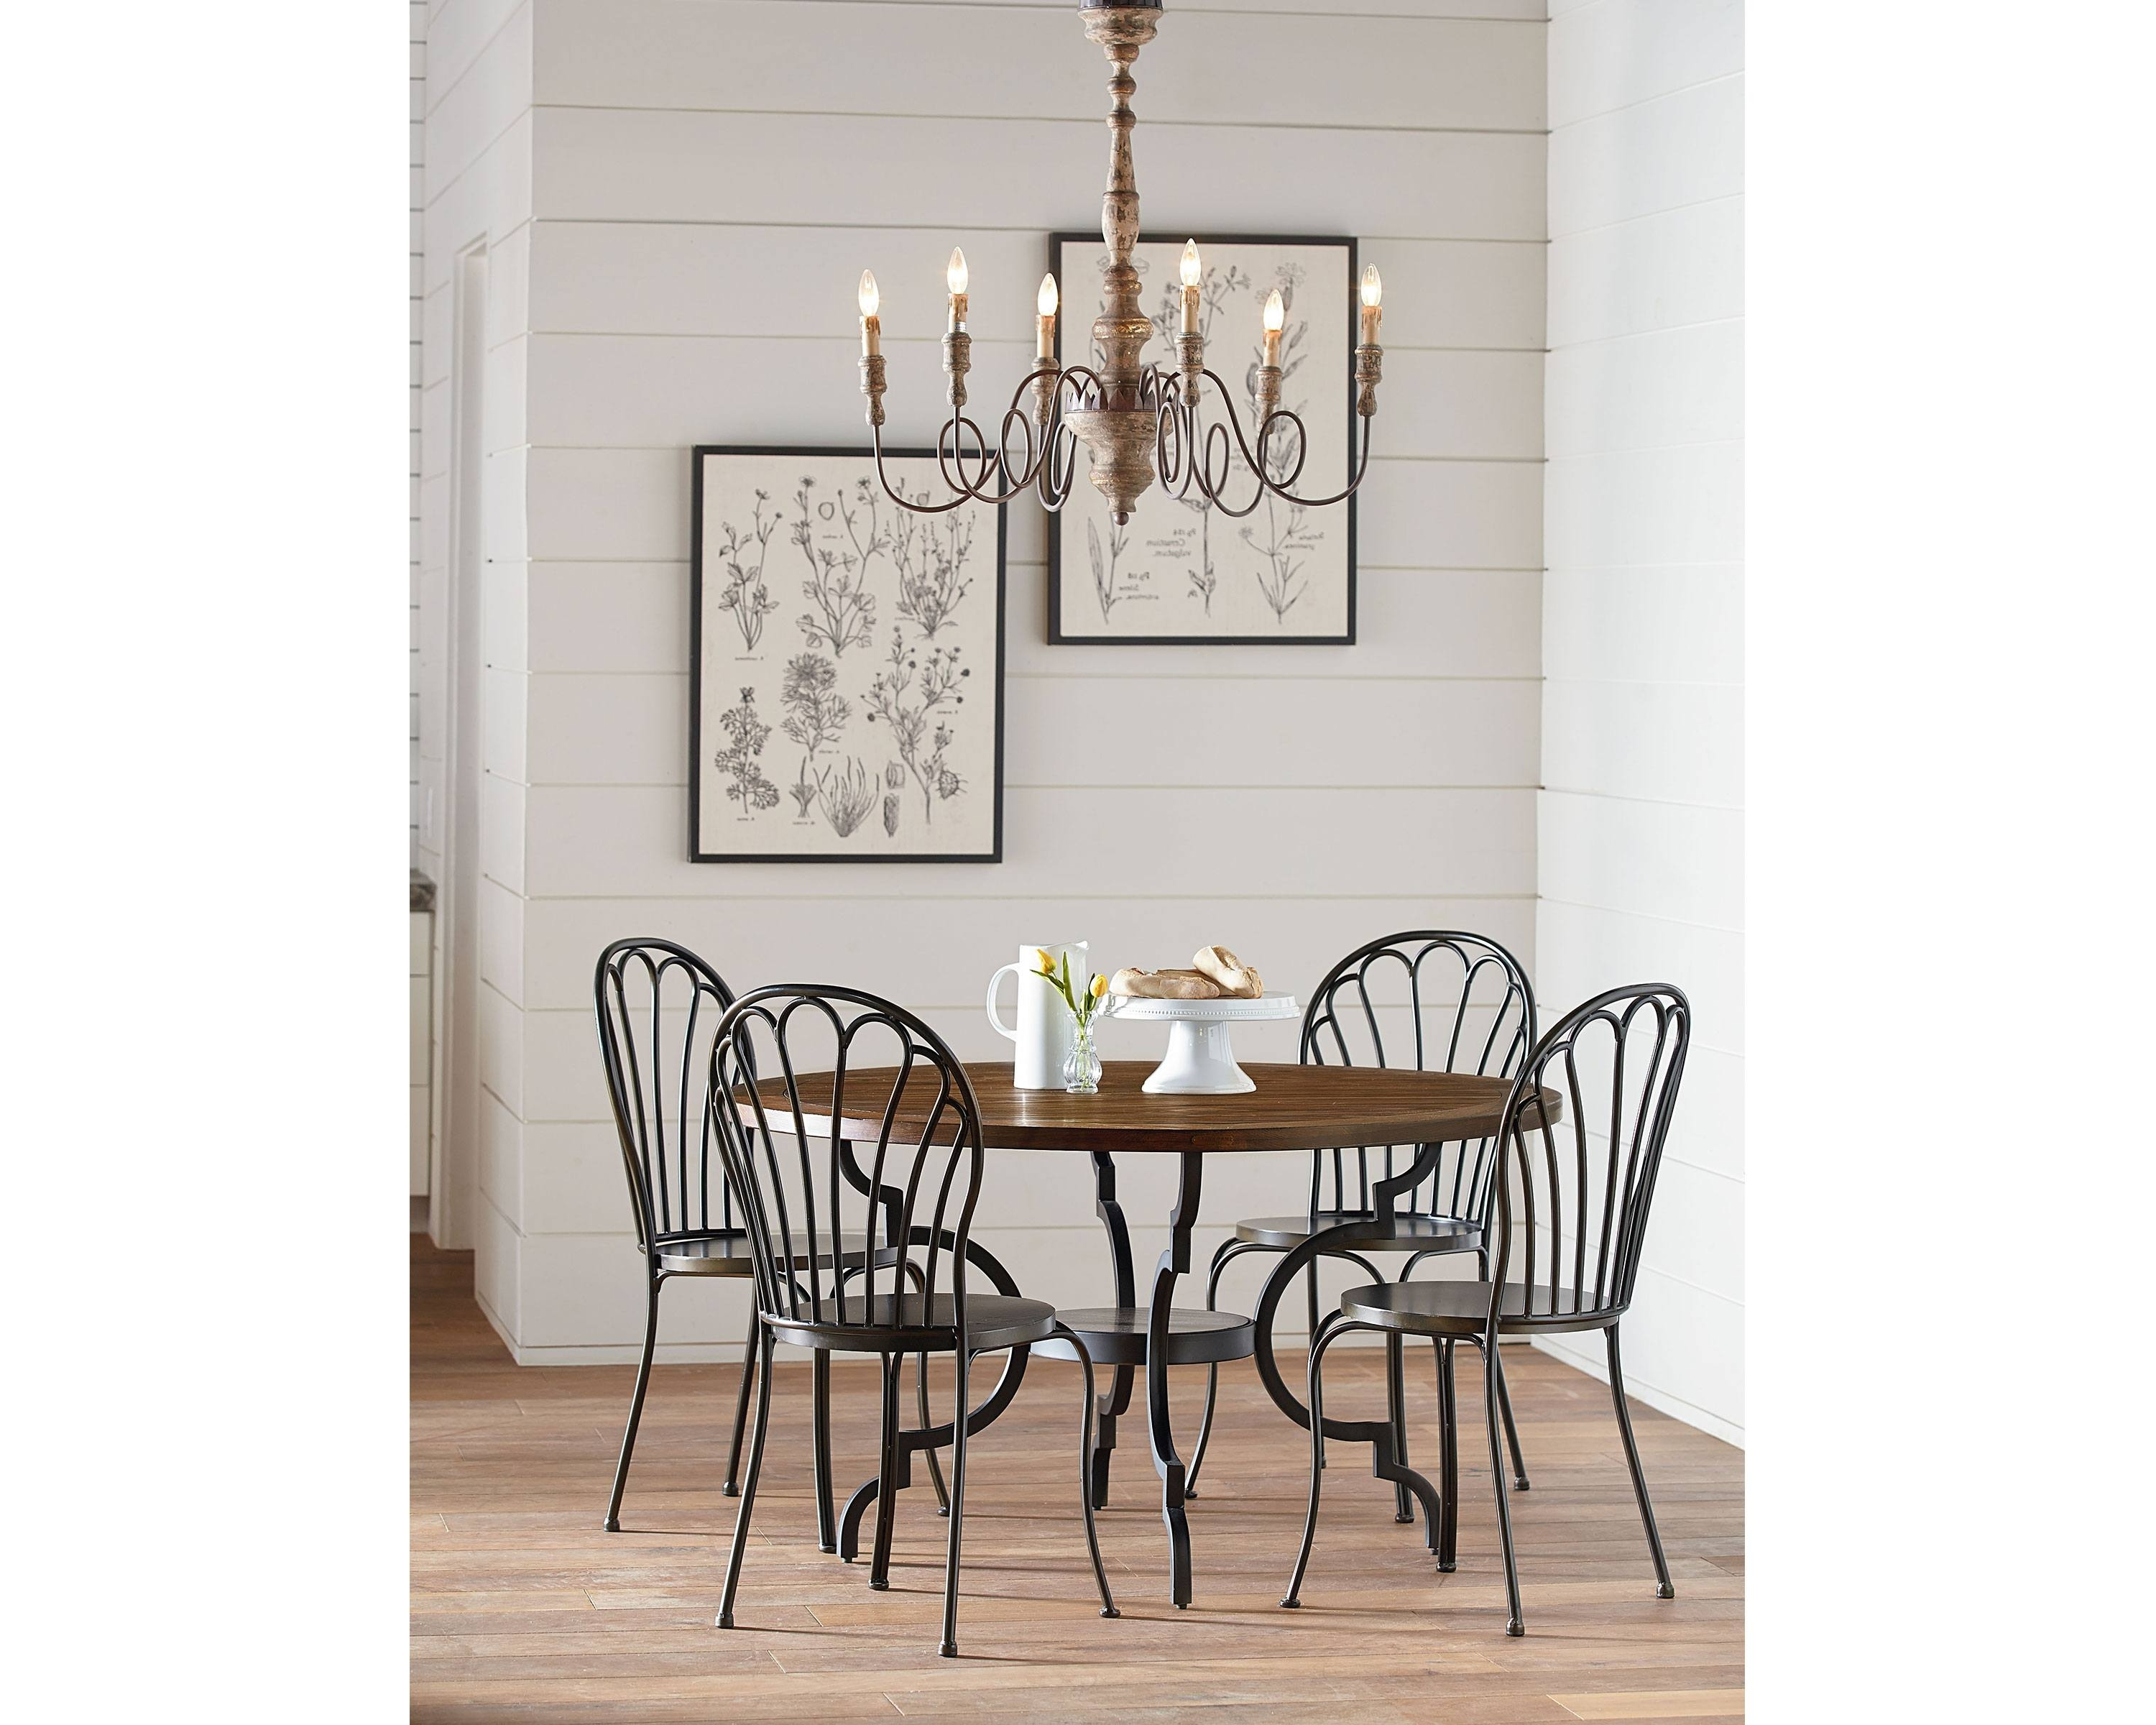 Breakfast + Peacock – Magnolia Home Regarding 2017 Magnolia Home Peacock Blackened Bronze Metal Side Chairs (View 3 of 20)